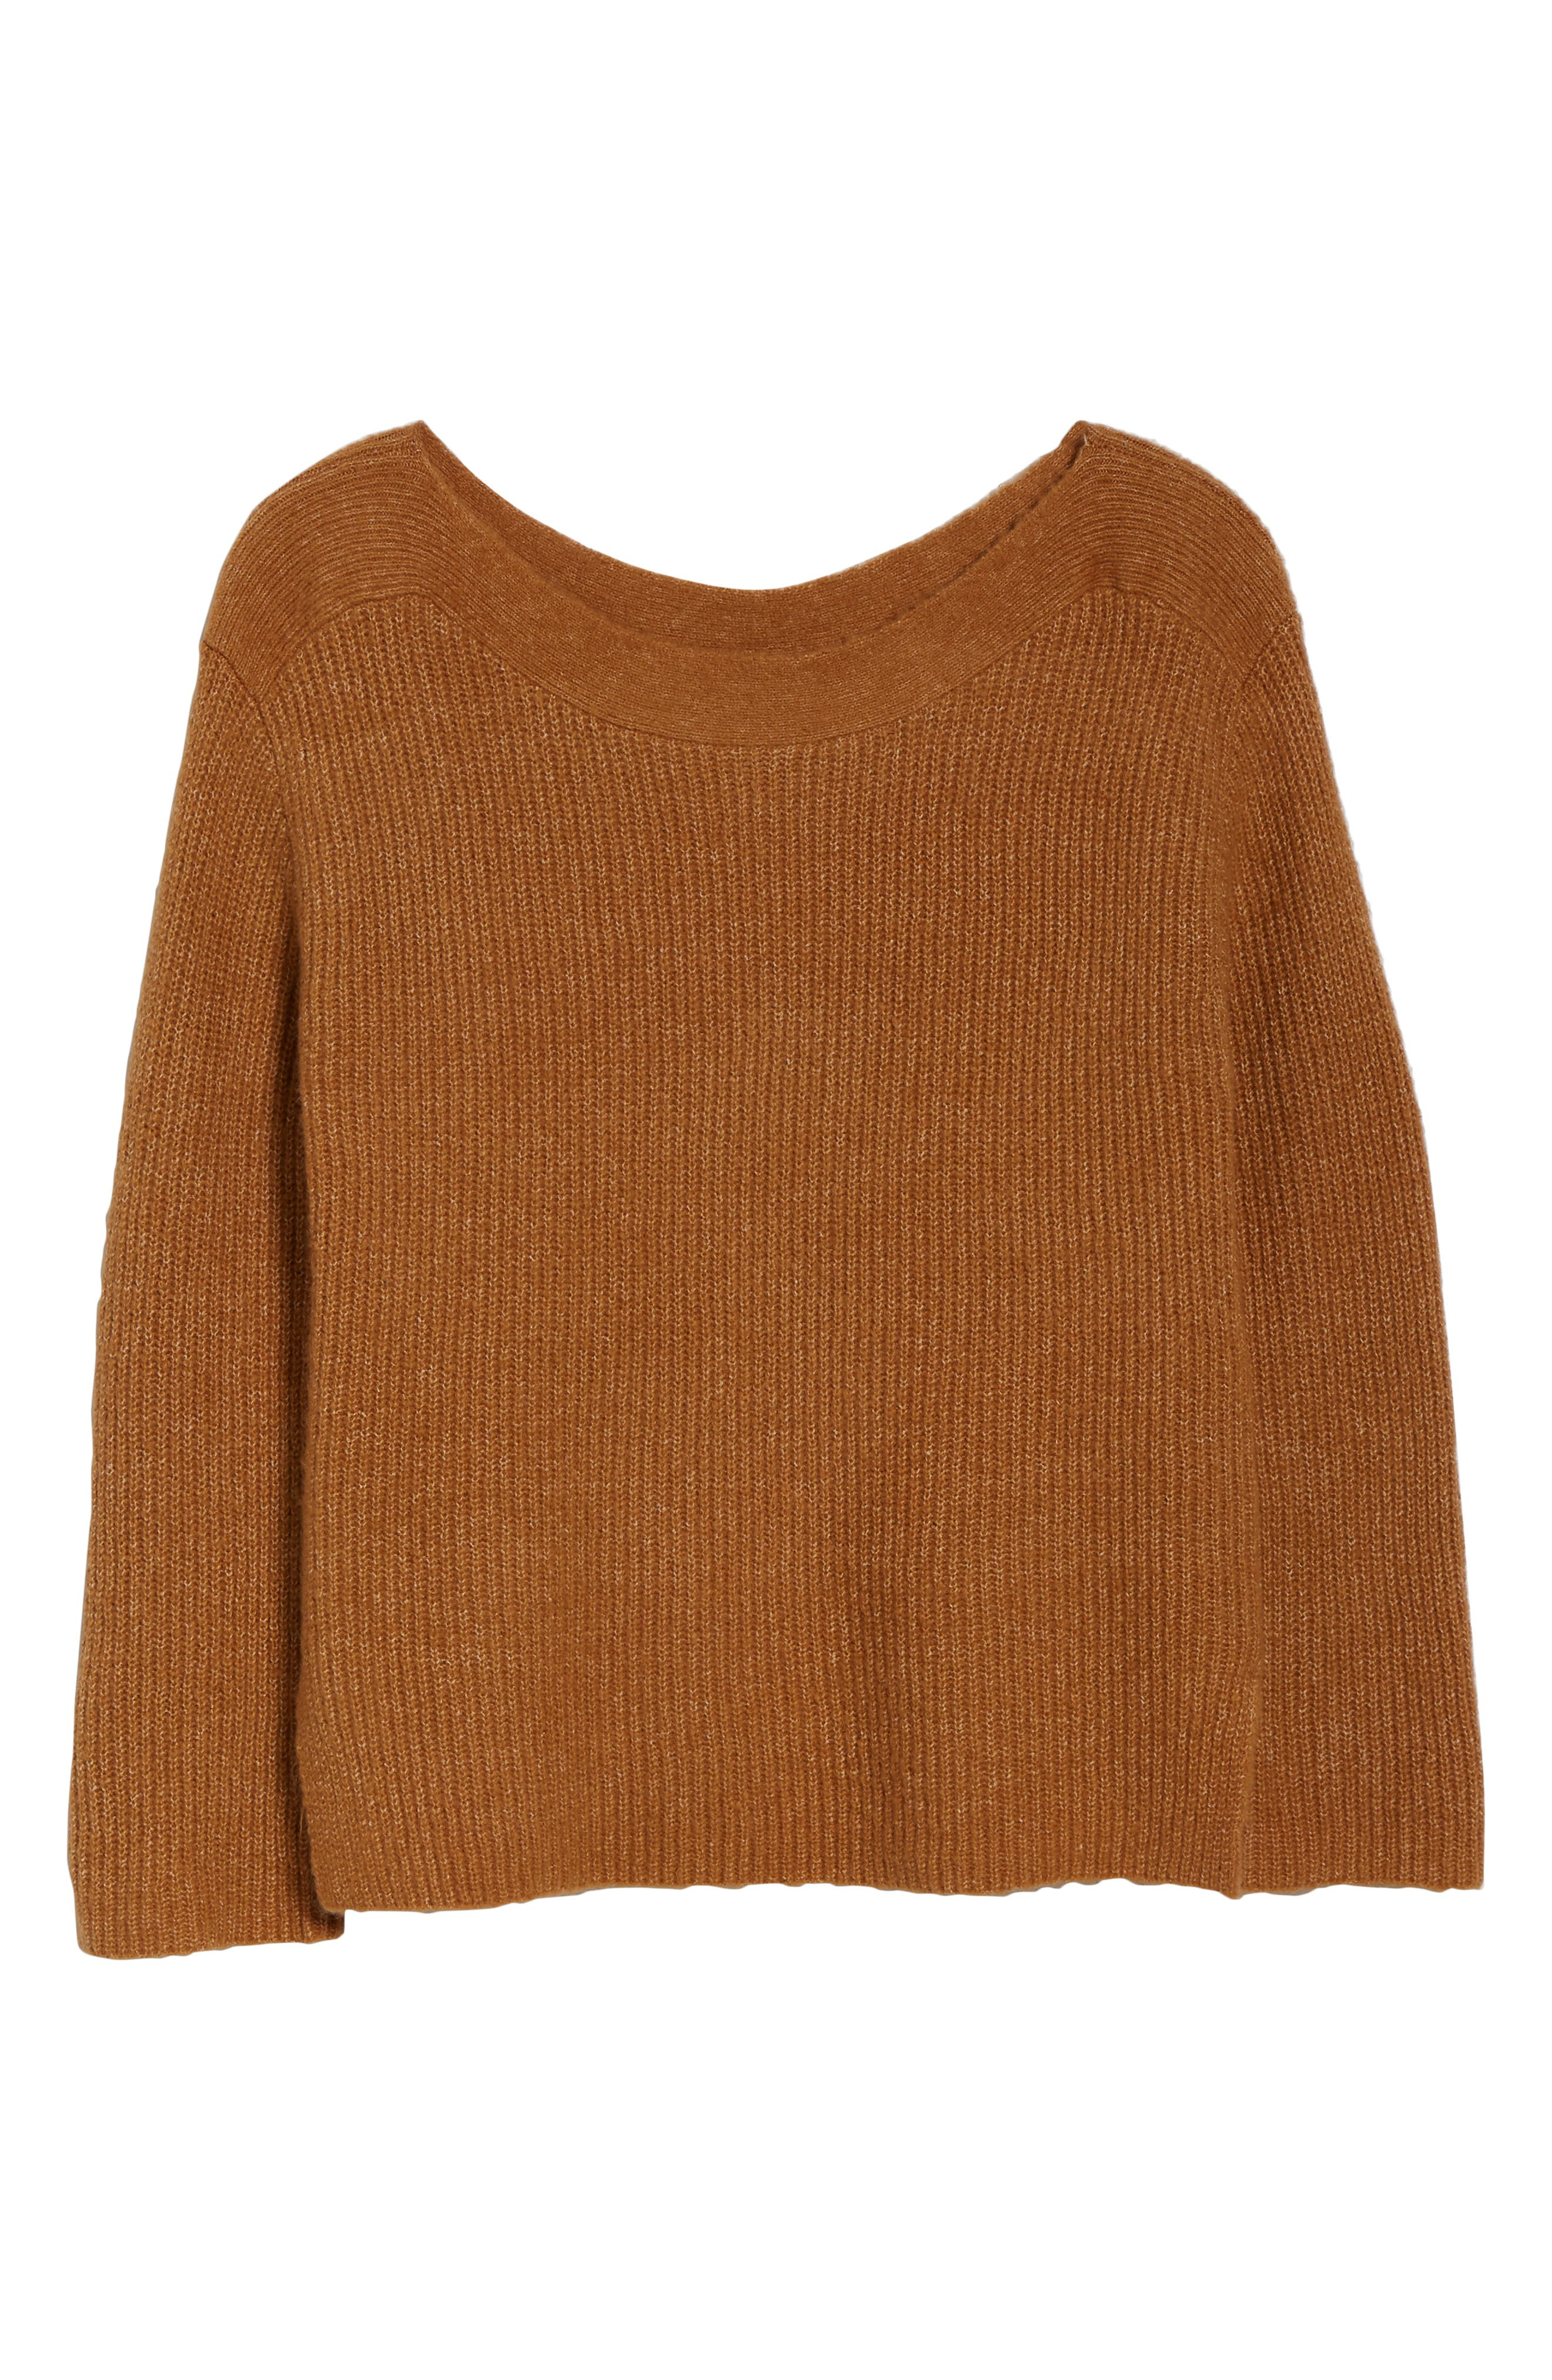 Cozy Femme Pullover Sweater,                             Alternate thumbnail 6, color,                             TAN DALE